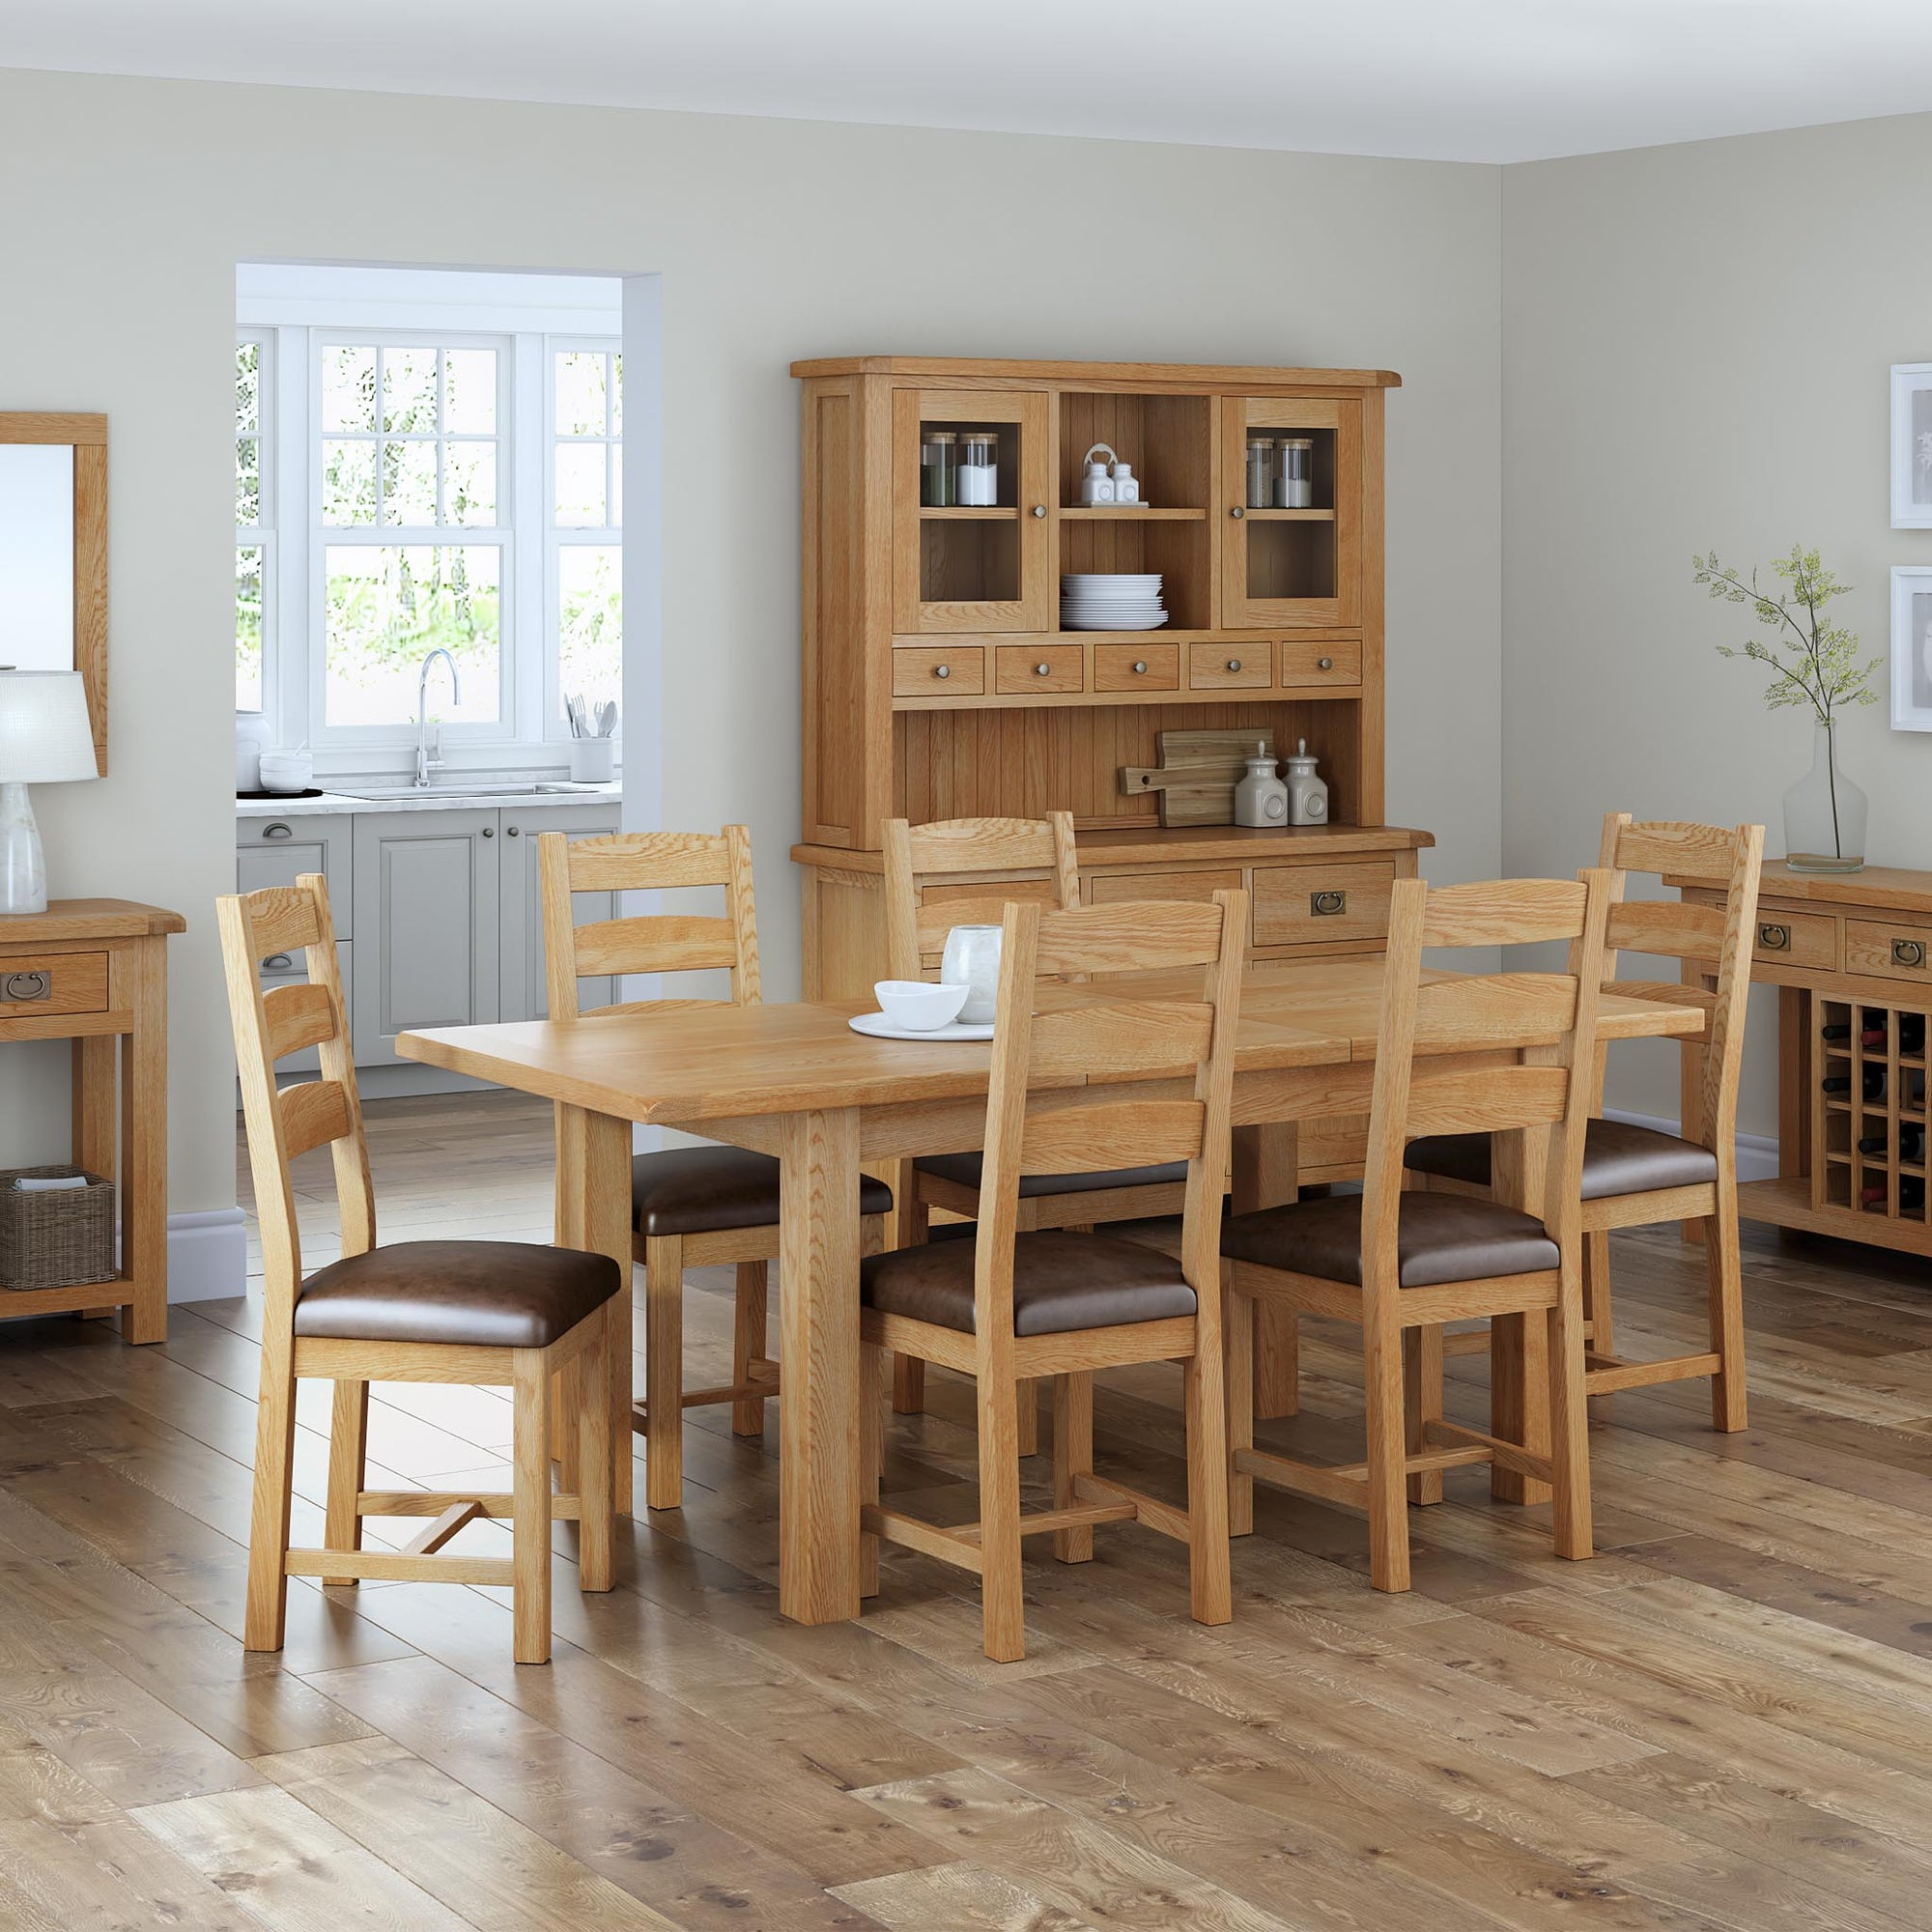 Oak Furniture | Roseland Furniture